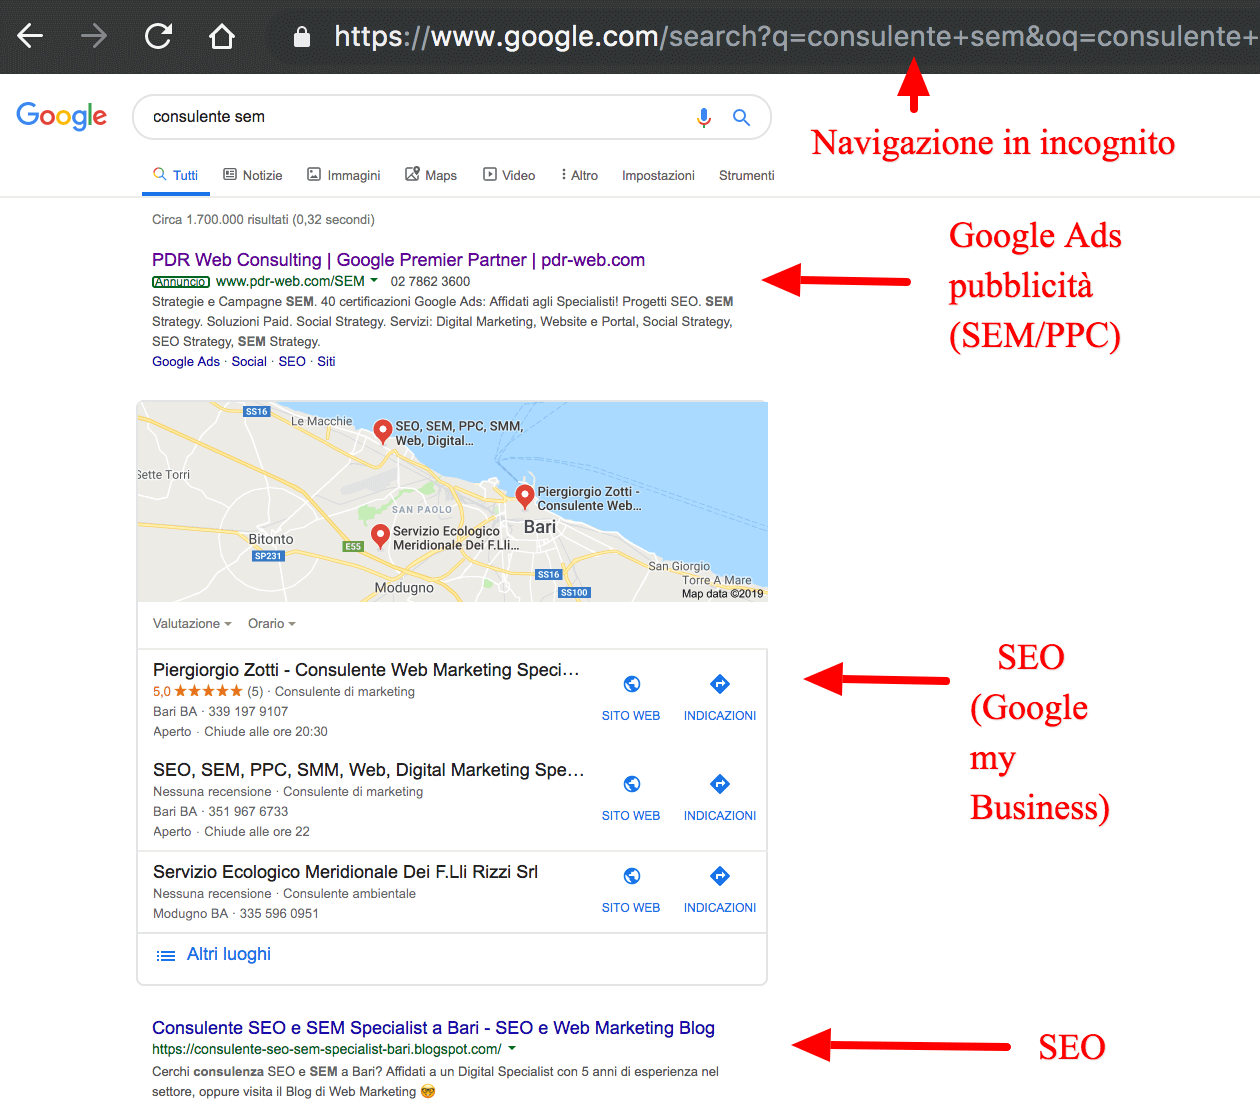 SERP: SEO locale, SEA e Google my Business